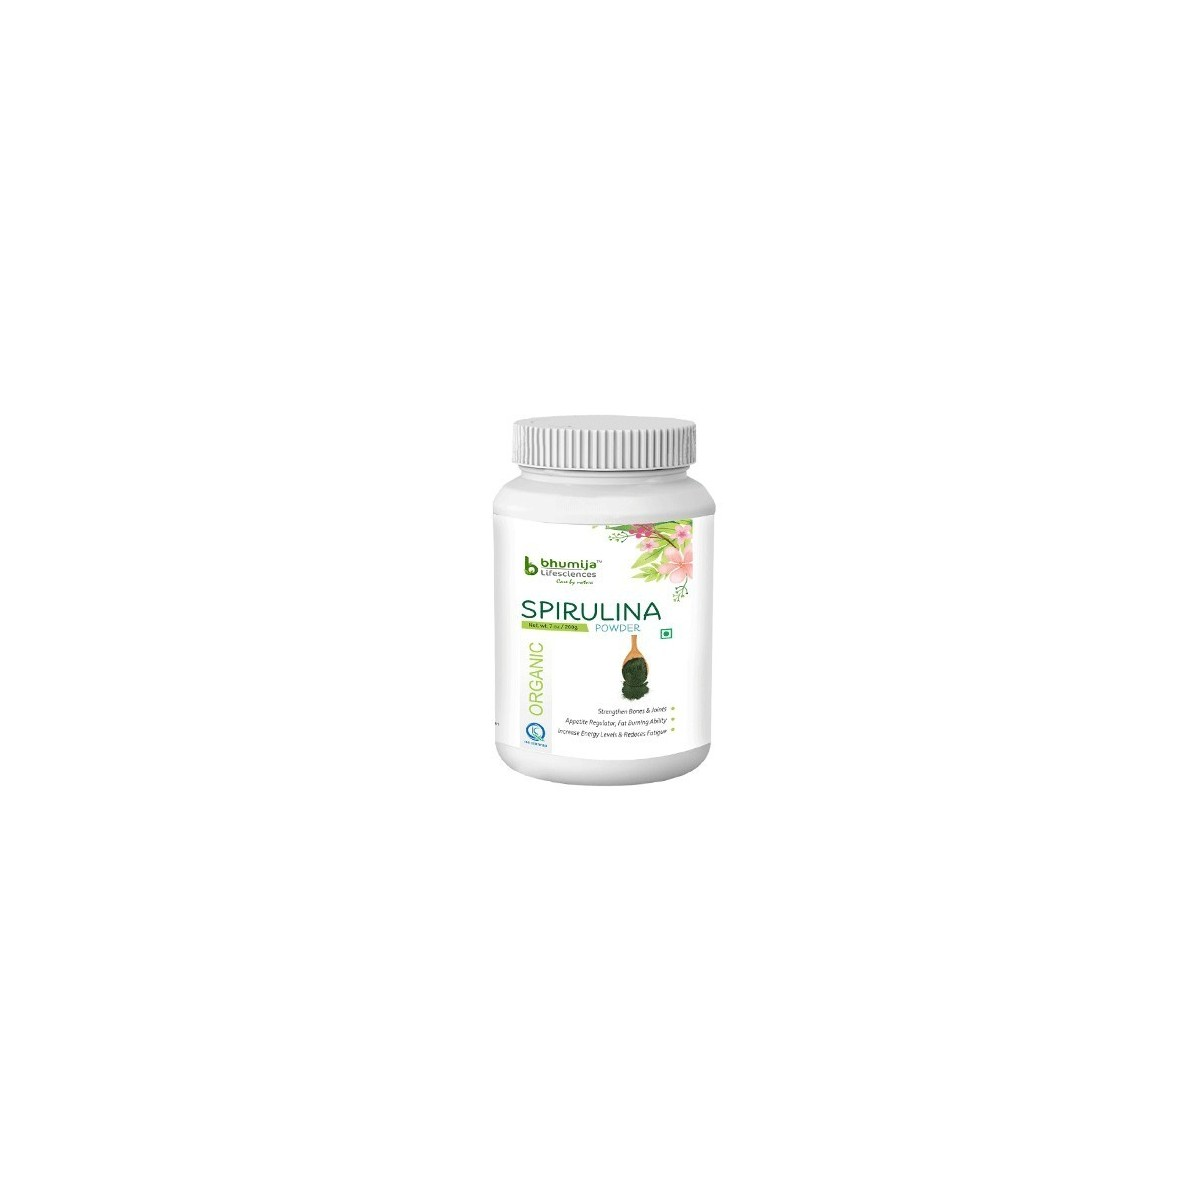 Bhumija Lifesciences Organic Spirulina Powder - 200 Grams